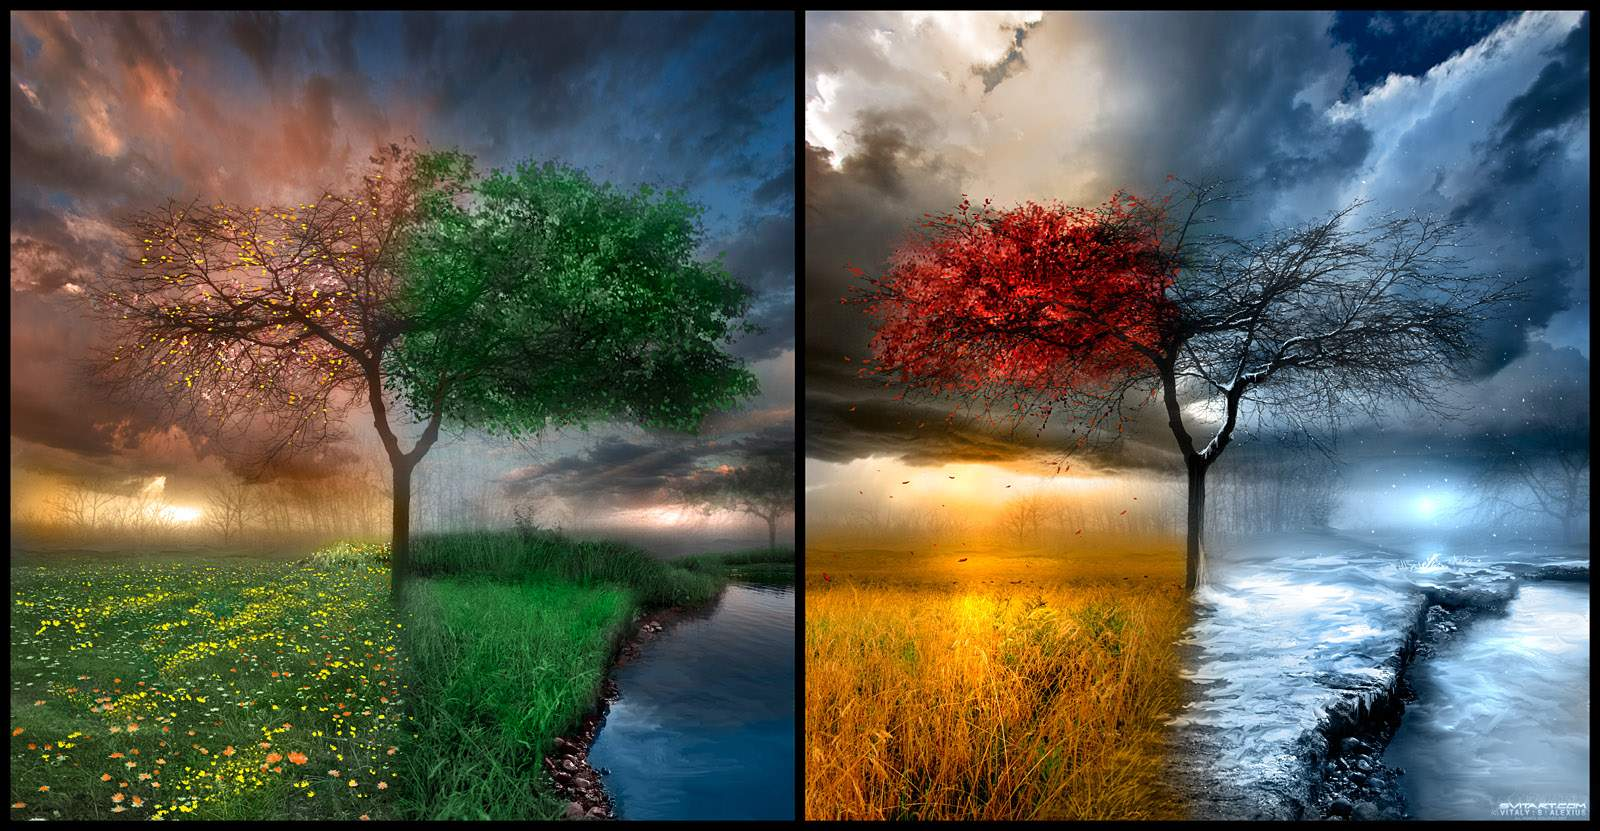 http://4.bp.blogspot.com/-bf6IHteSpiM/UG7fFTrq_ZI/AAAAAAAAAow/VzeVM3a814M/s1600/multi-monitor-earth-seasons-hd-wallpaper-widwscreen.jpg